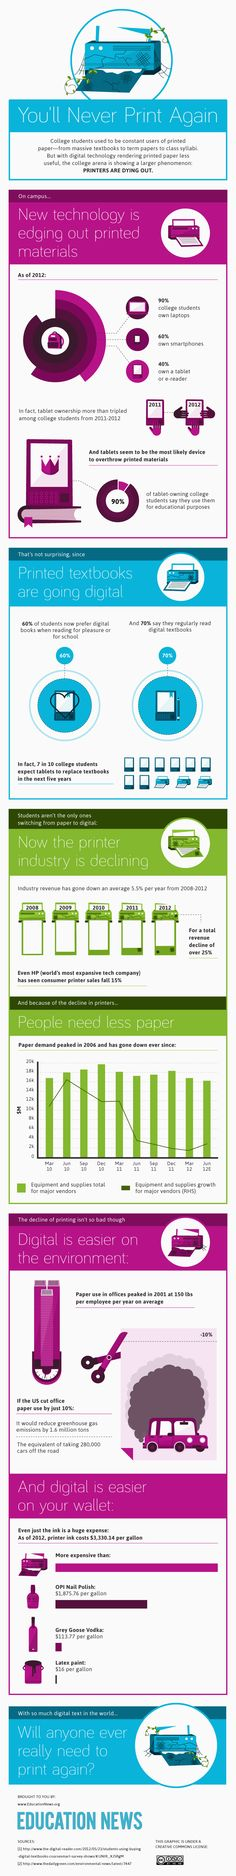 Decline of Paper Infographic...no decline in the information just the format it's served in.